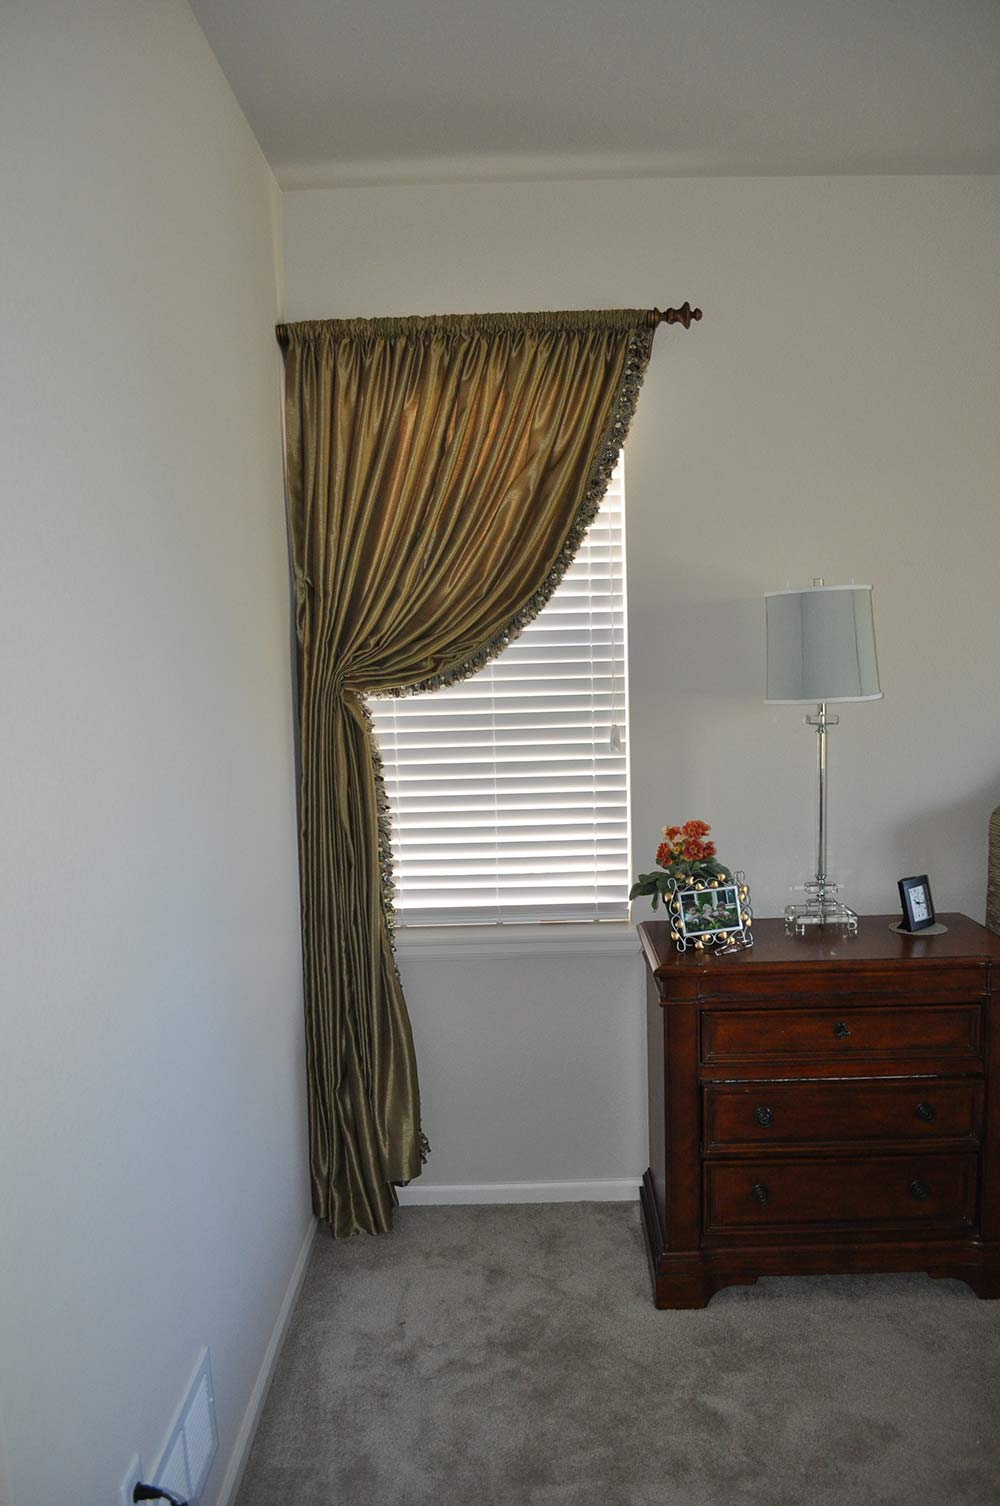 curtain with fringe pulled to one side